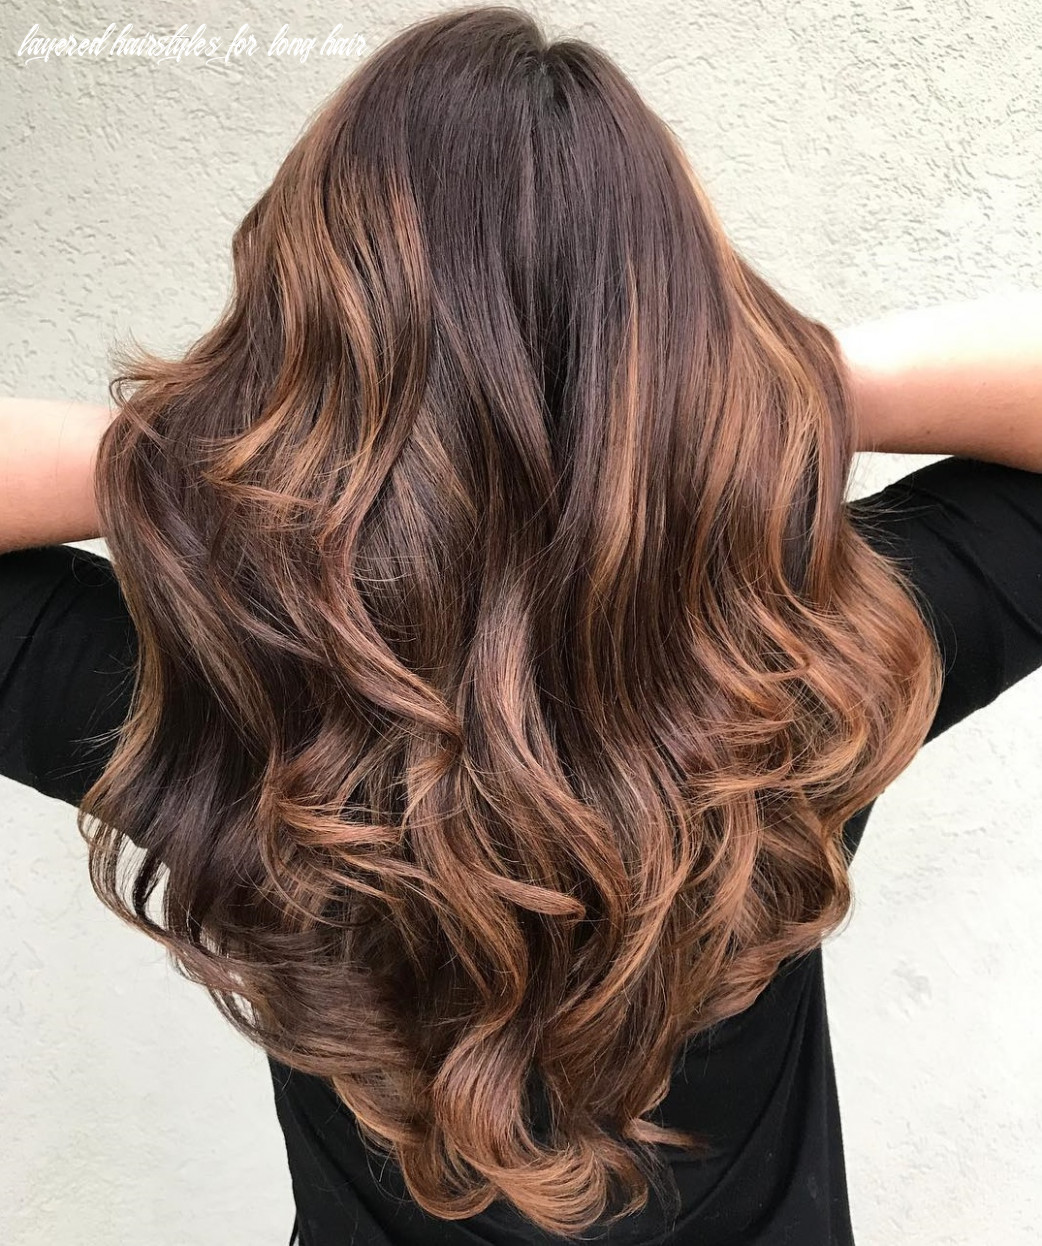 8 new long hairstyles with layers for 8 hair adviser layered hairstyles for long hair